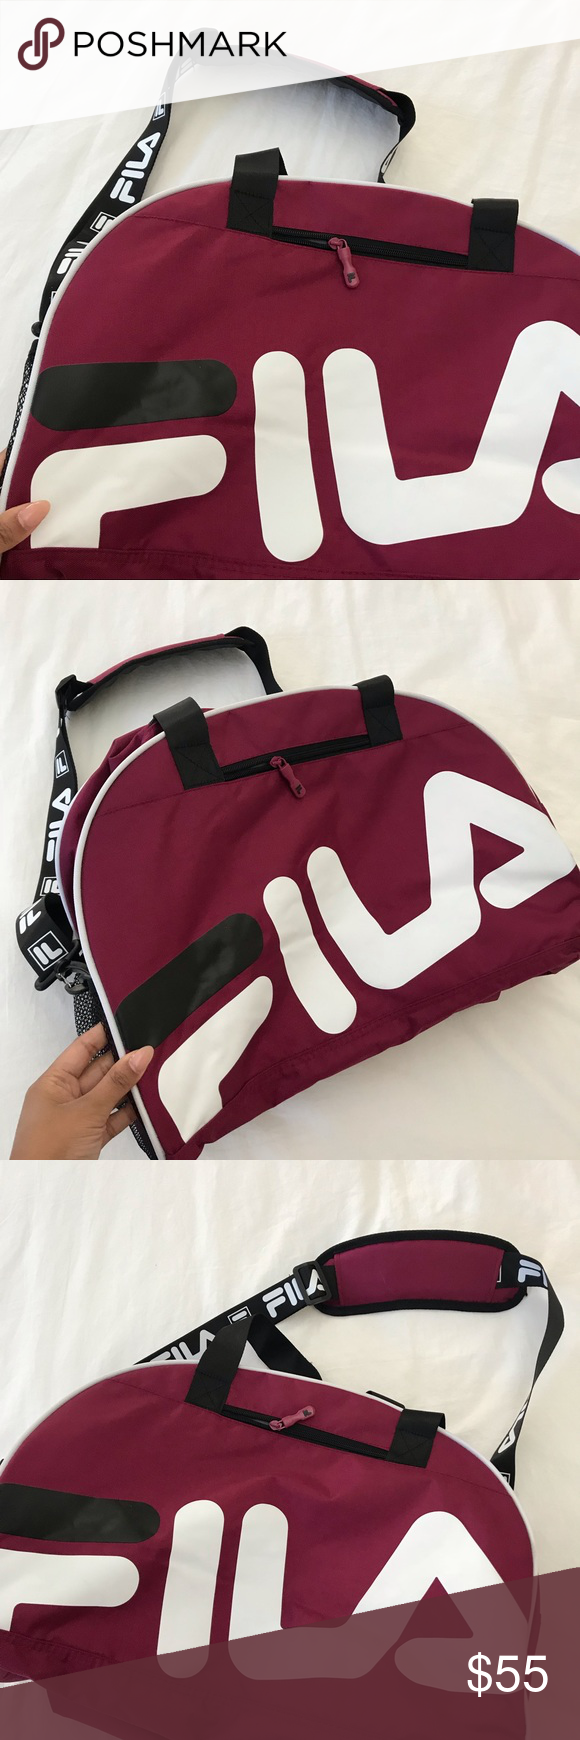 e12d4812f4a664 Burgundy FILA duffle NWT So cute! Brand new Price is FIRM Do not offer No  additional photos No trading Bundles welcome Fila Bags Travel Bags